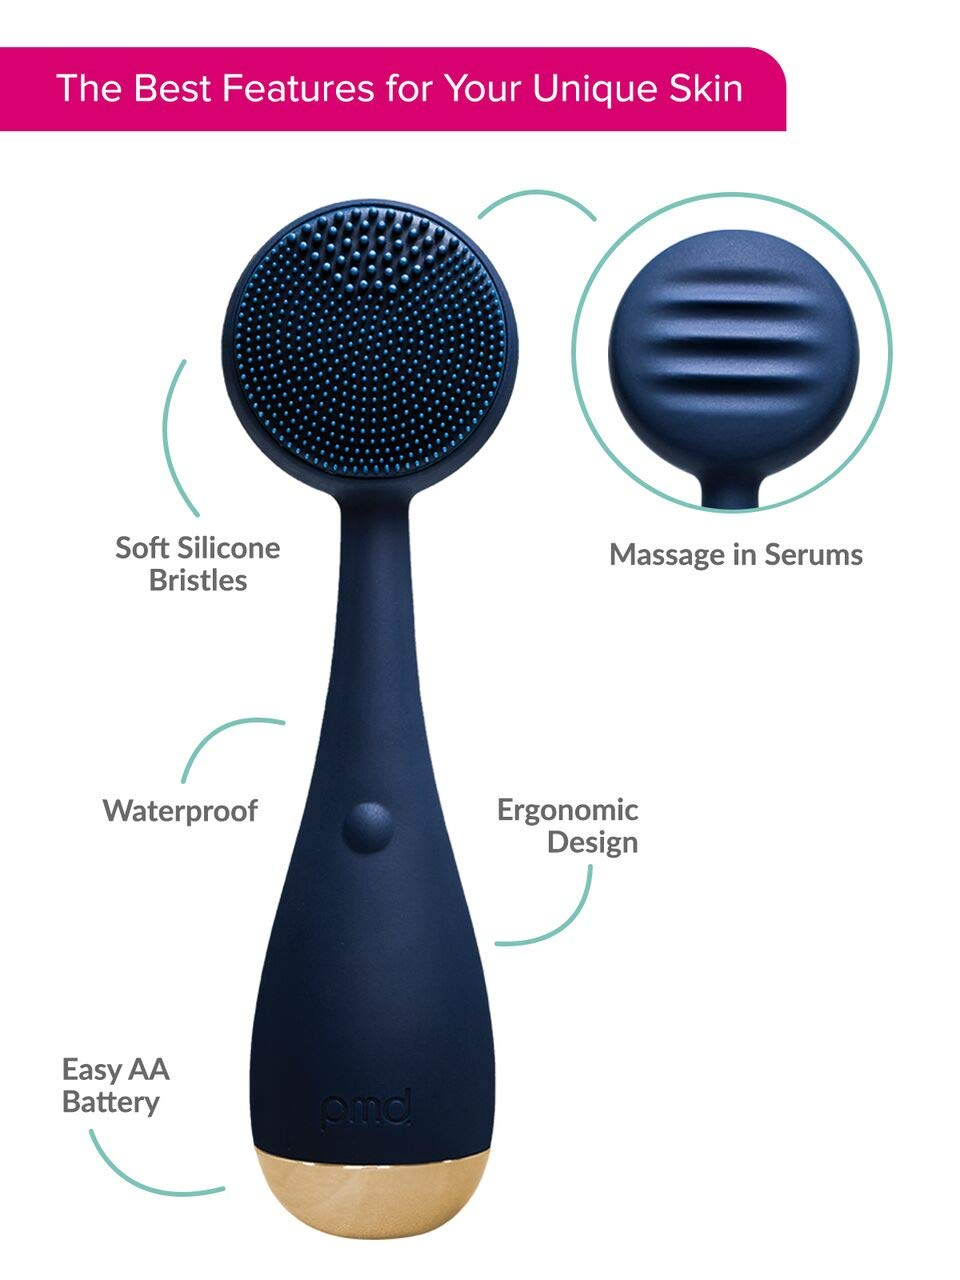 PMD Clean | Smart Facial Cleansing Brush and Face Massager Device for Youthful Skin | Navy with Gold by PMD Personal Microderm (Image #7)